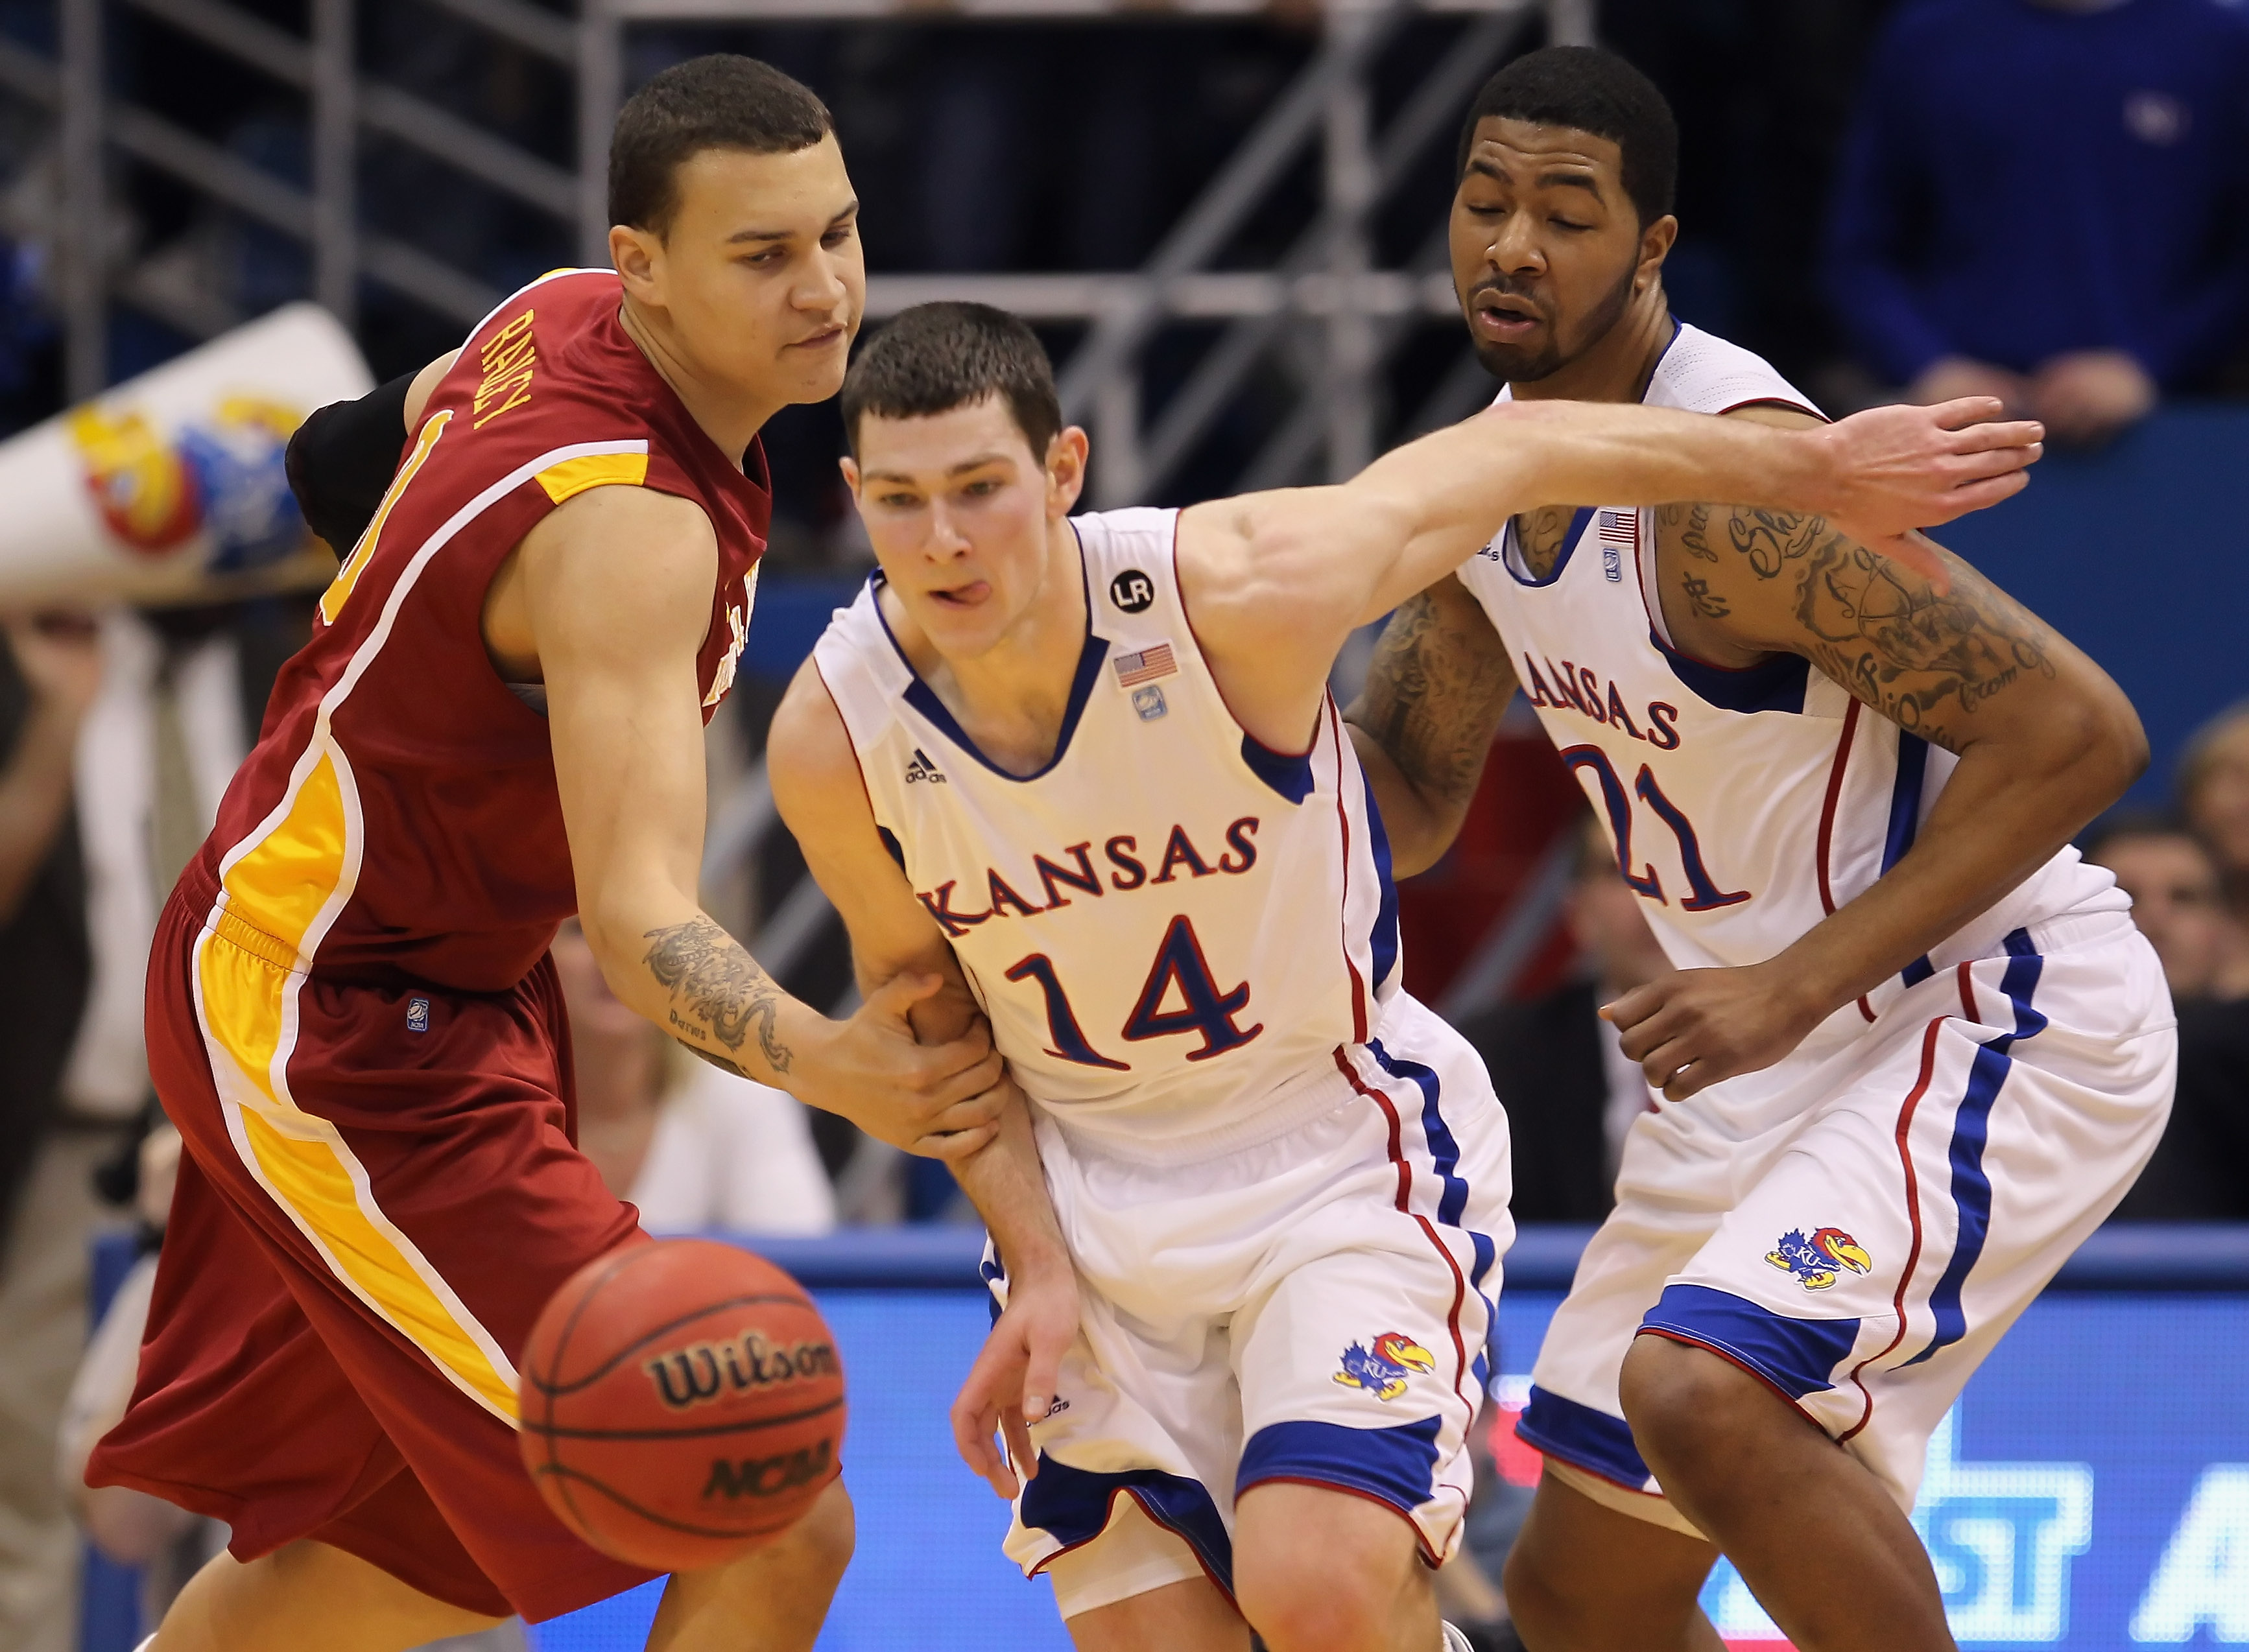 LAWRENCE, KS - FEBRUARY 12:  Jordan Railey #0 of the Iowa State Cyclones fouls Tyrel Reed #14 of the Kansas Jayhawks on a loose ball as Markieff Morris #21 looks on during the game on February 12, 2011 at Allen Fieldhouse in Lawrence, Kansas.  (Photo by J